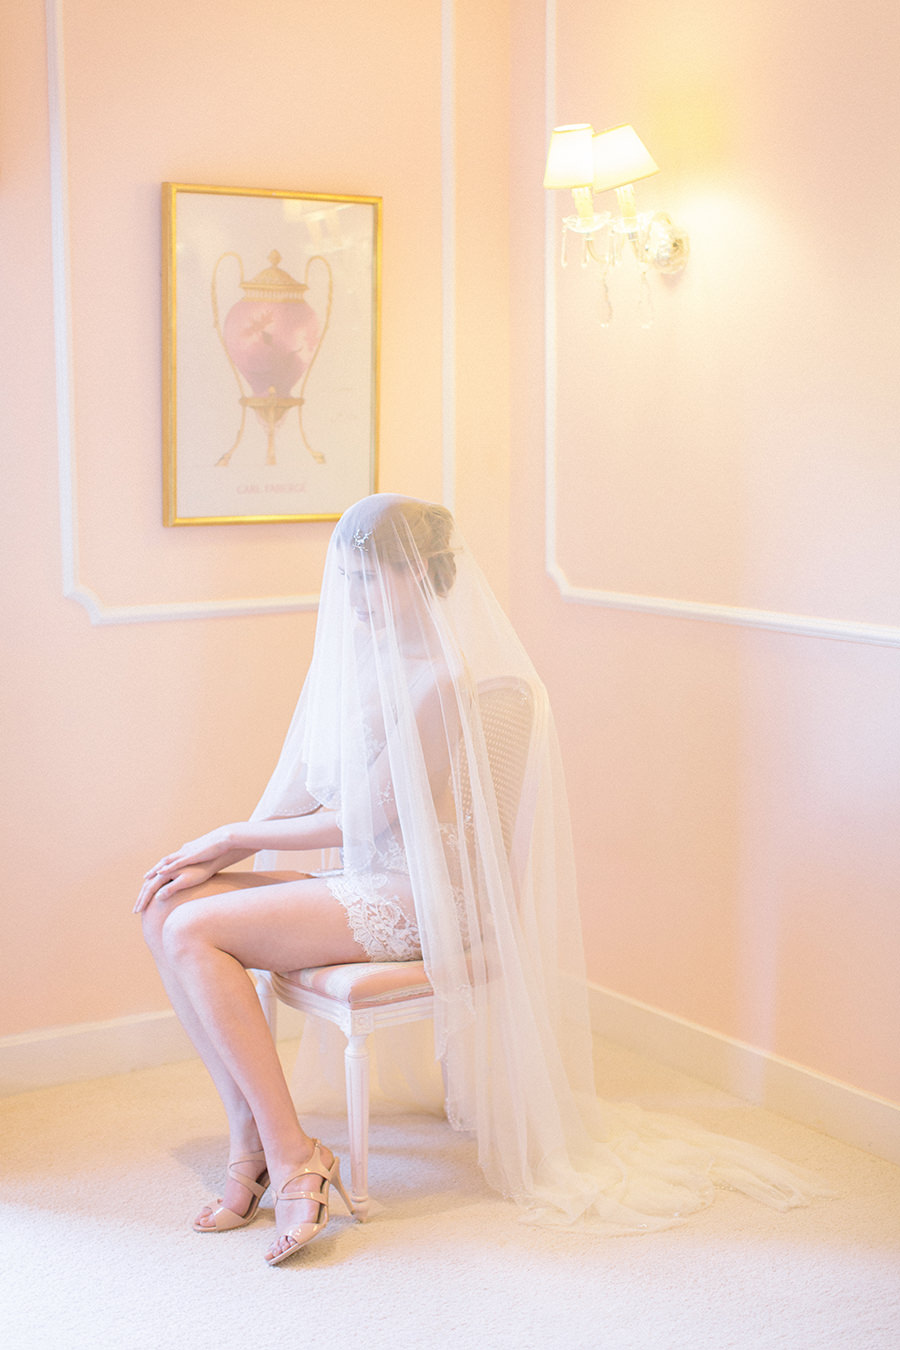 Radiant Beauty: A Delicate Bridal Boudoir Session From Greece!Radiant Beauty: A Delicate Bridal Boudoir Session From Greece!